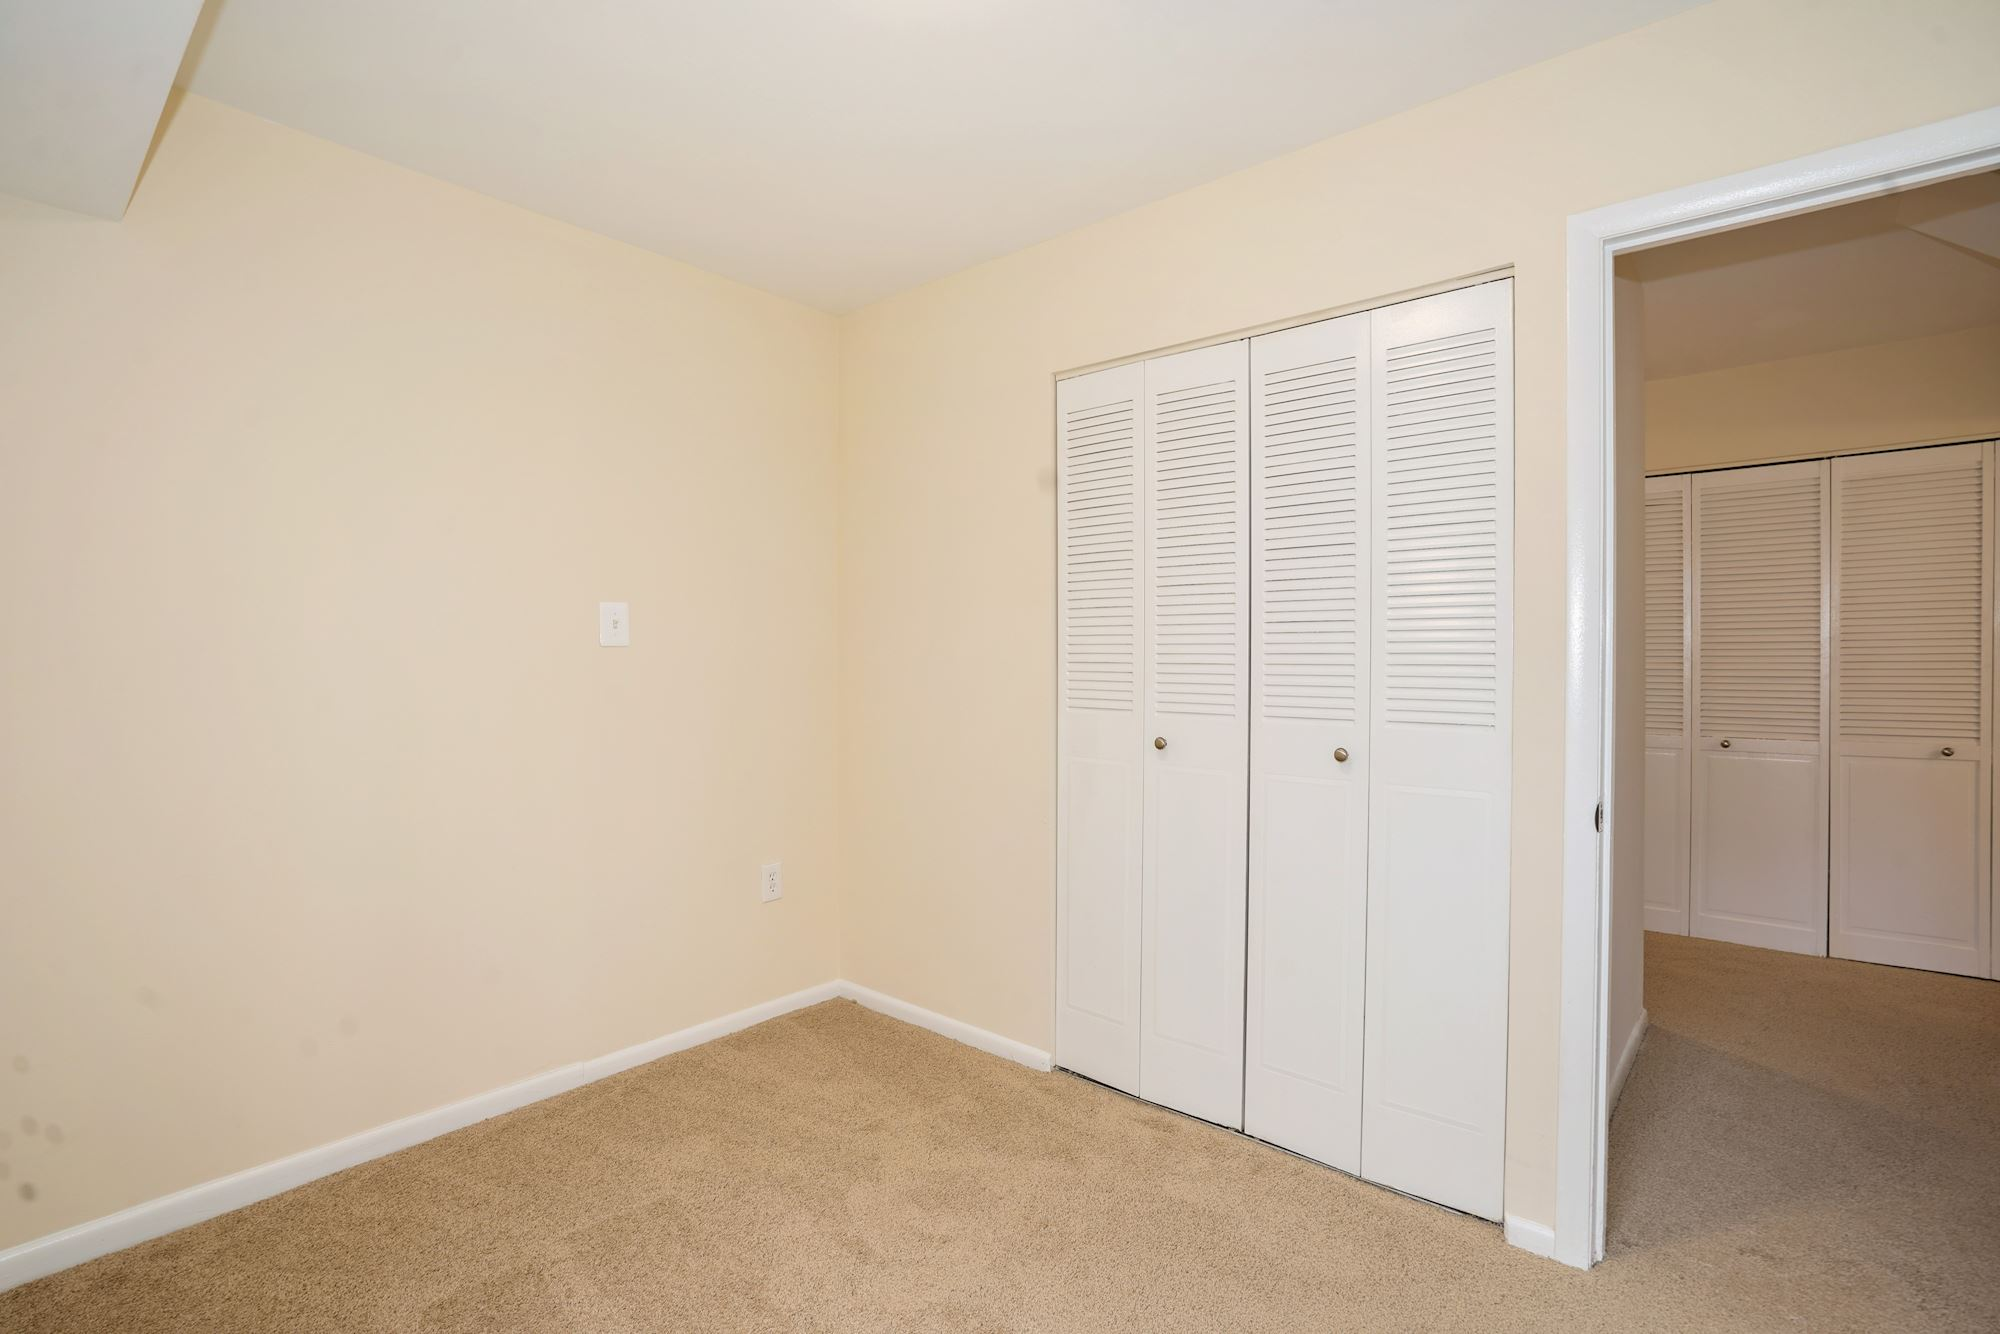 All the Closet Space